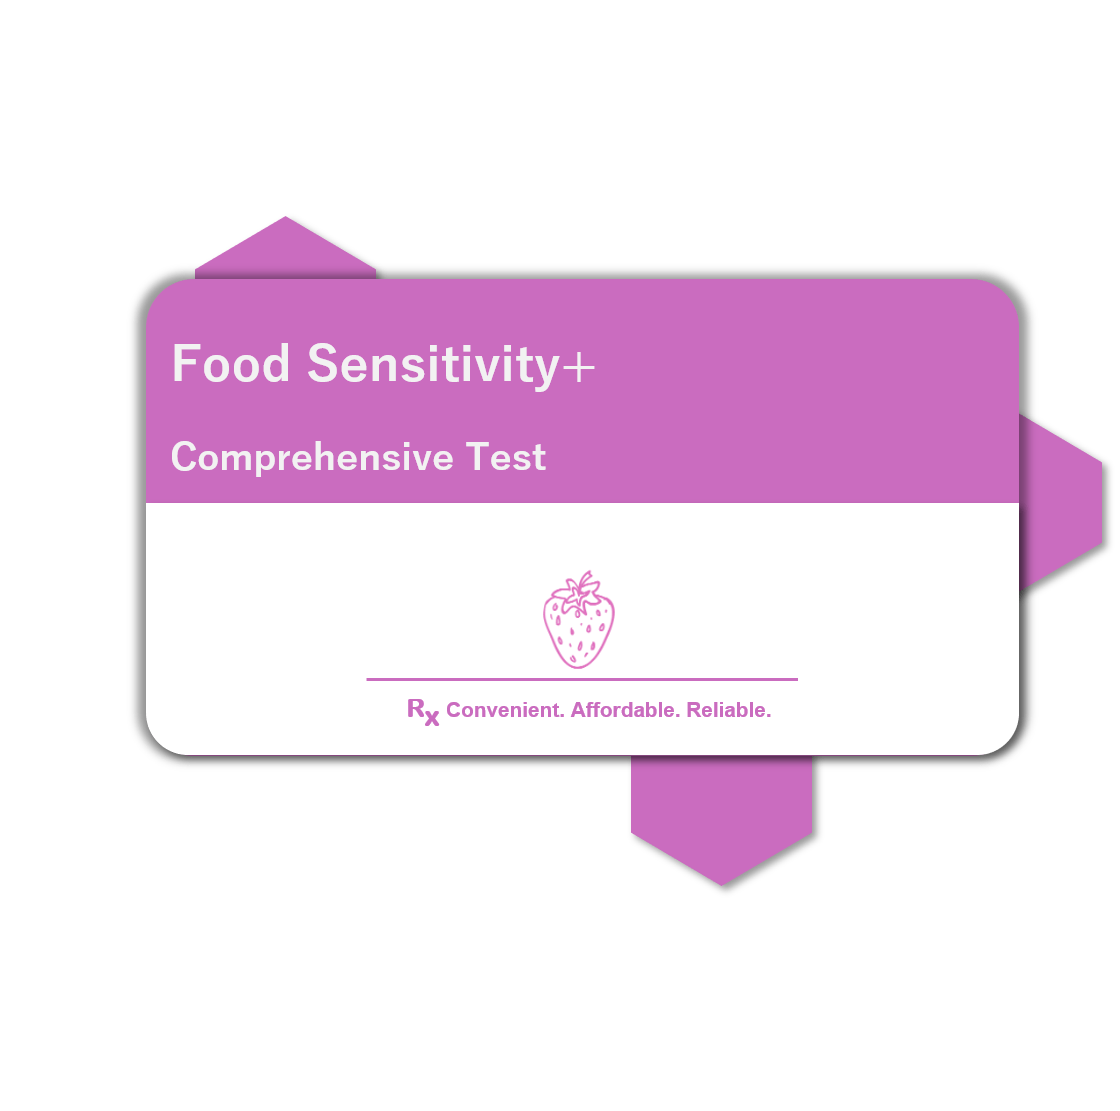 Food Sensitivity+ - Comprehensive